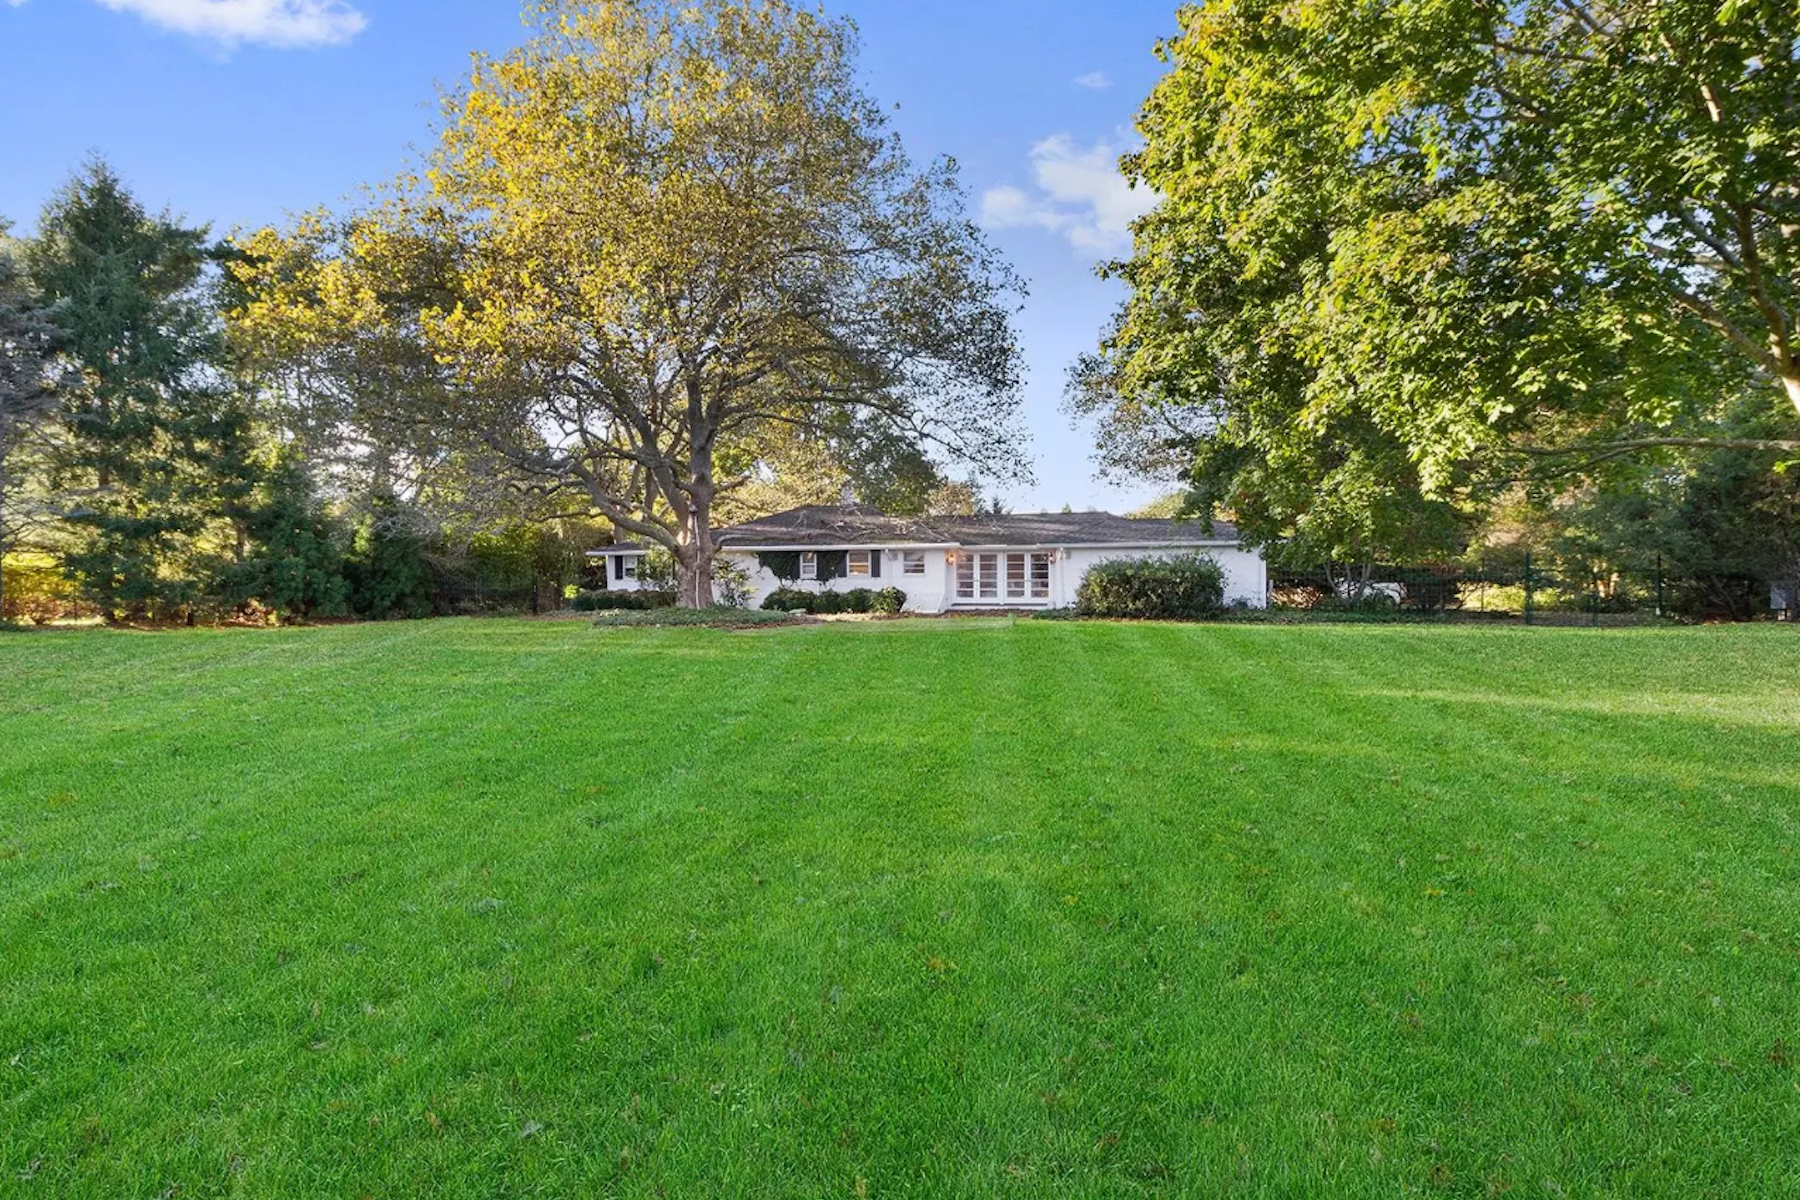 Single Family Homes for Sale at Lily Pond Estate Section 33 Apaquogue Road East Hampton, New York 11937 United States